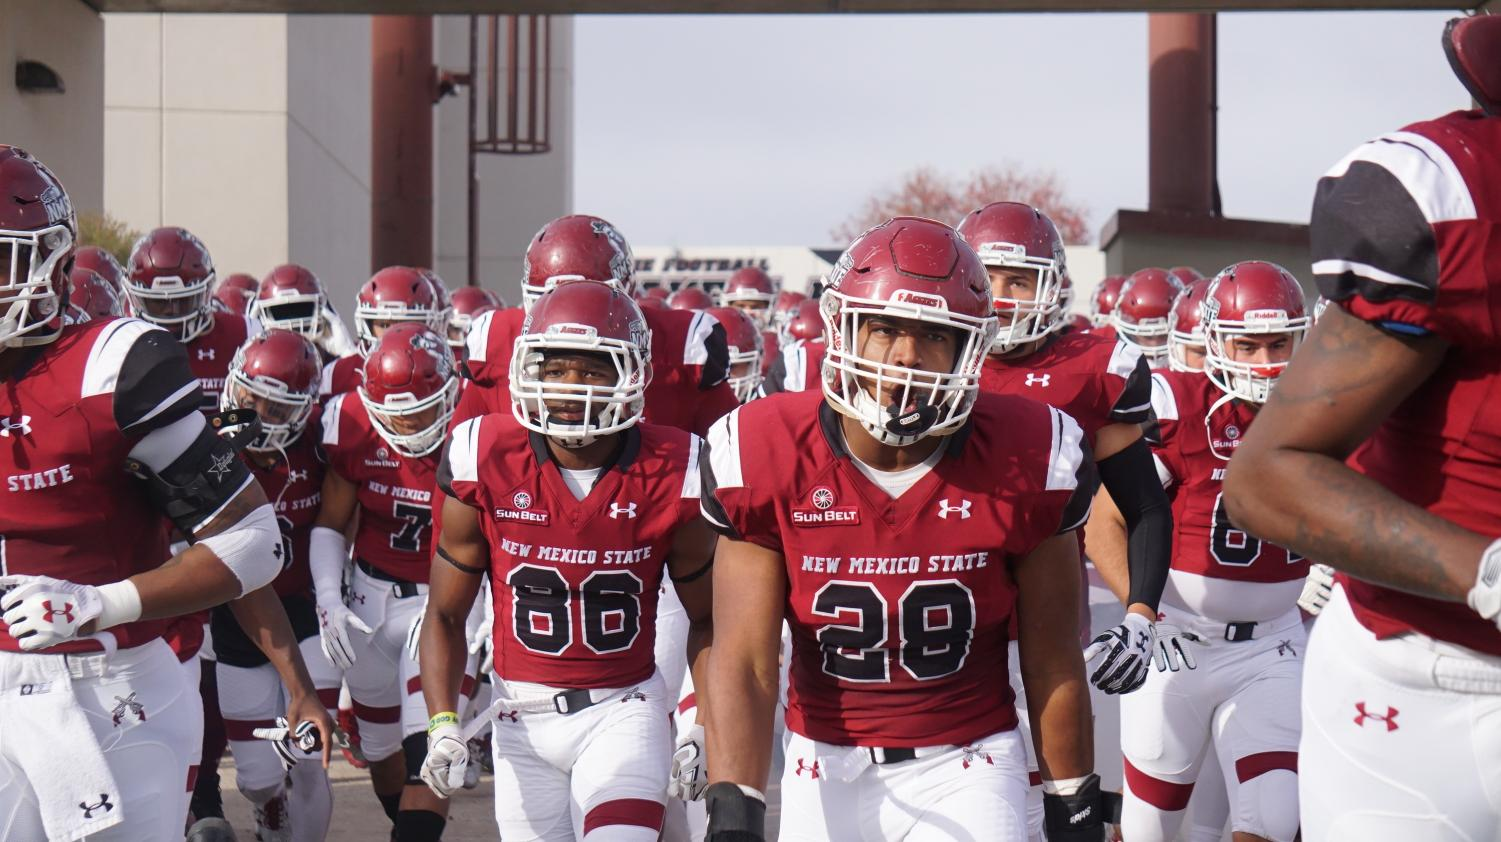 The New Mexico State Aggies football team.